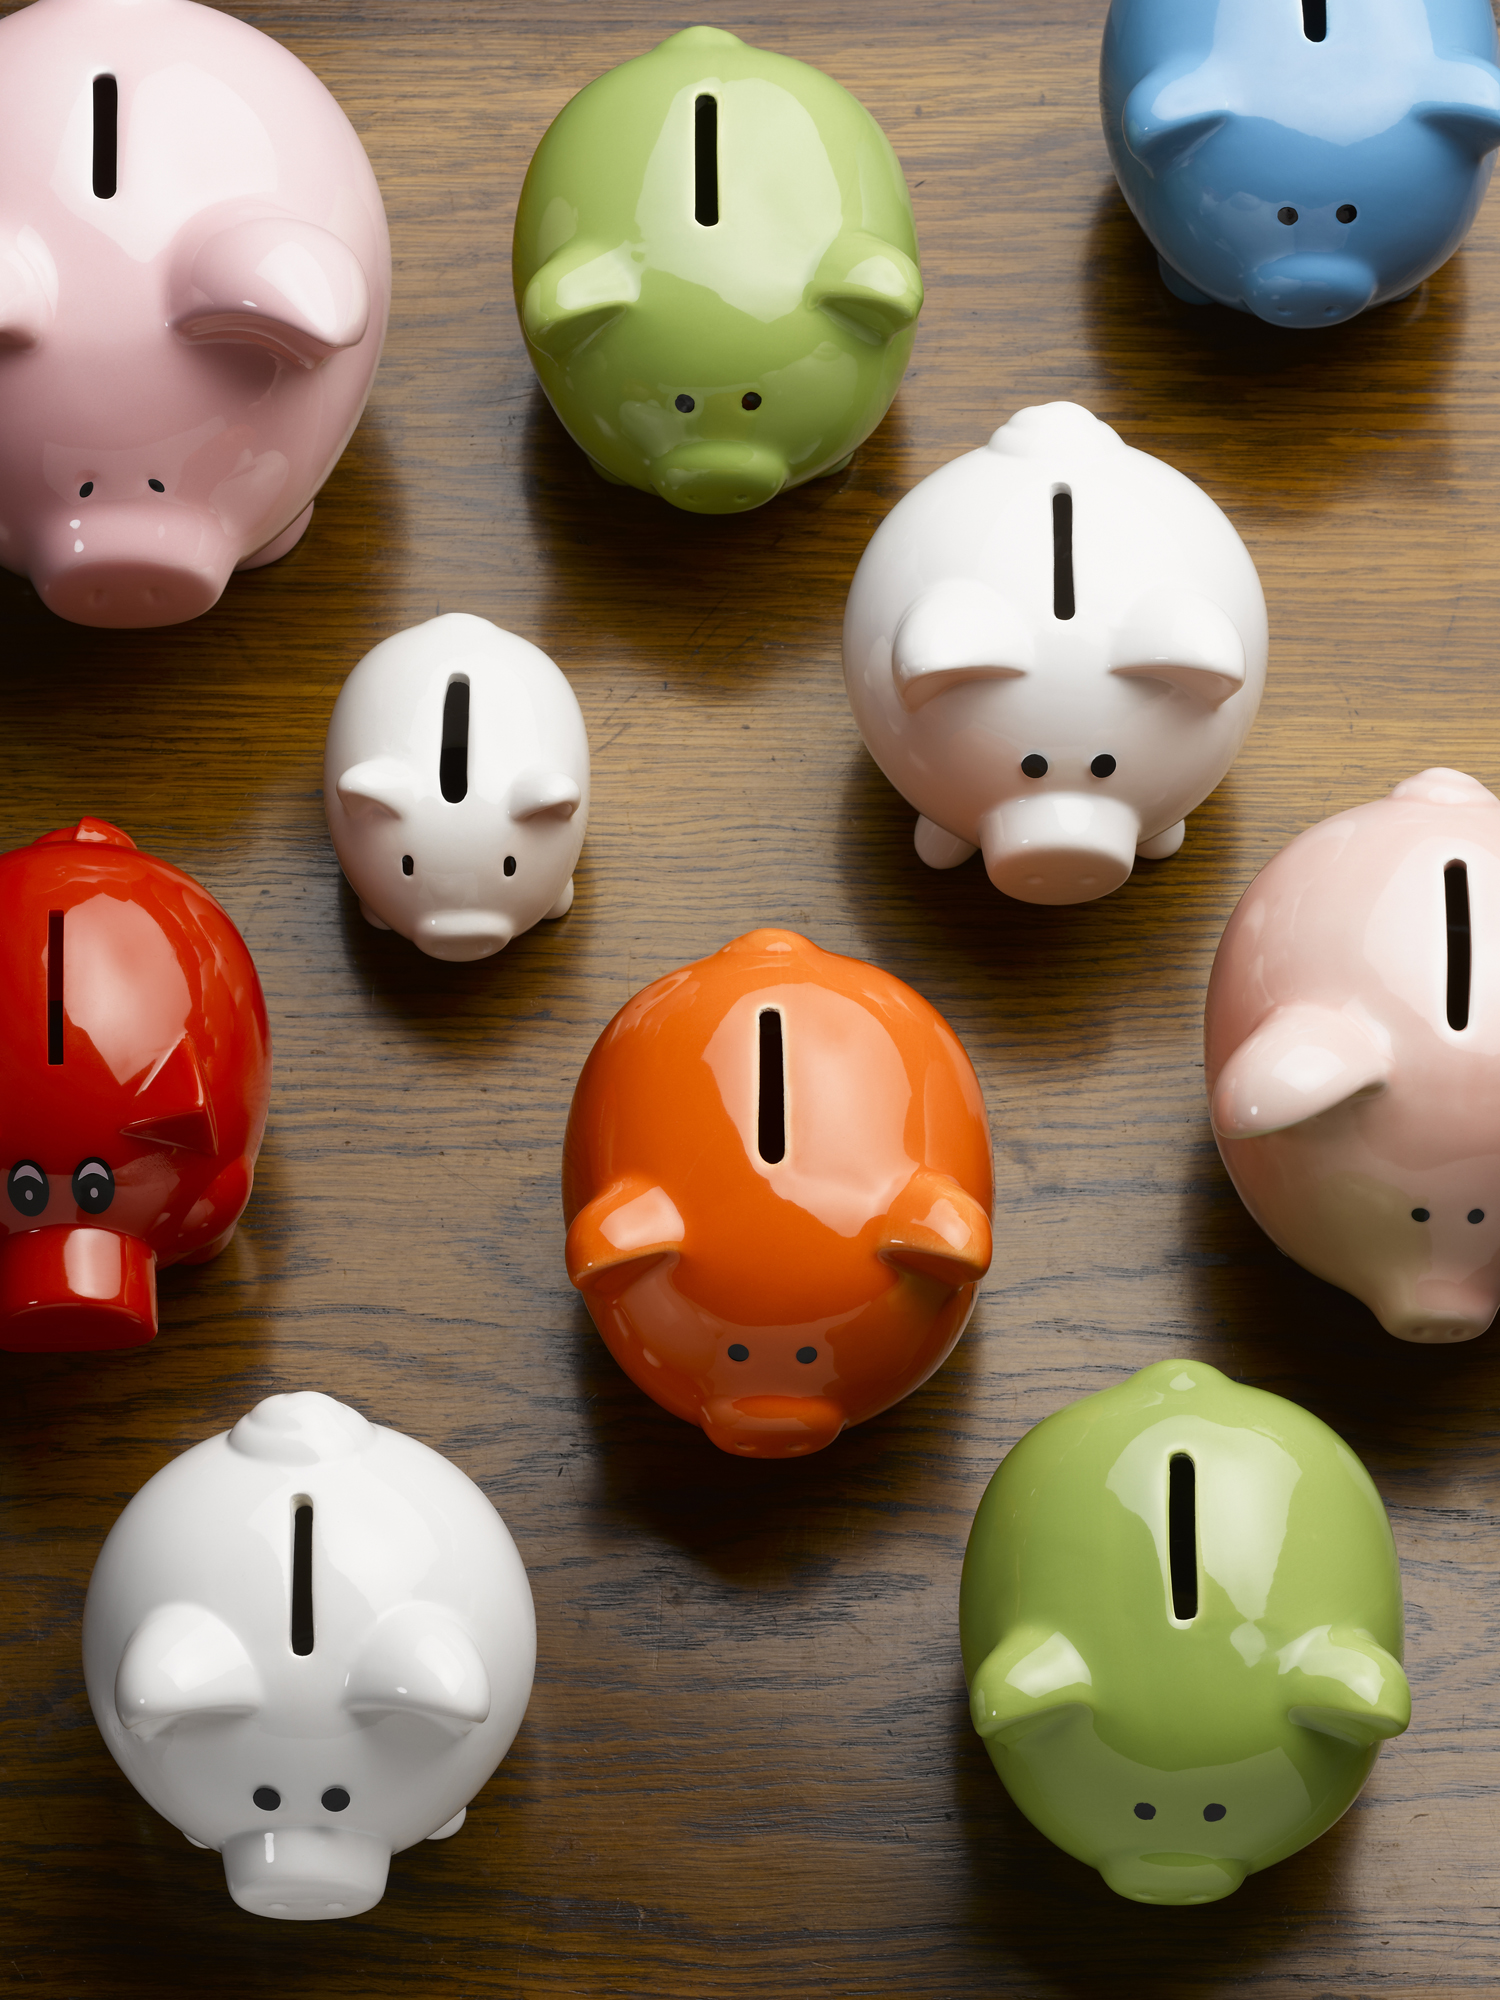 Multi-colored piggy banks